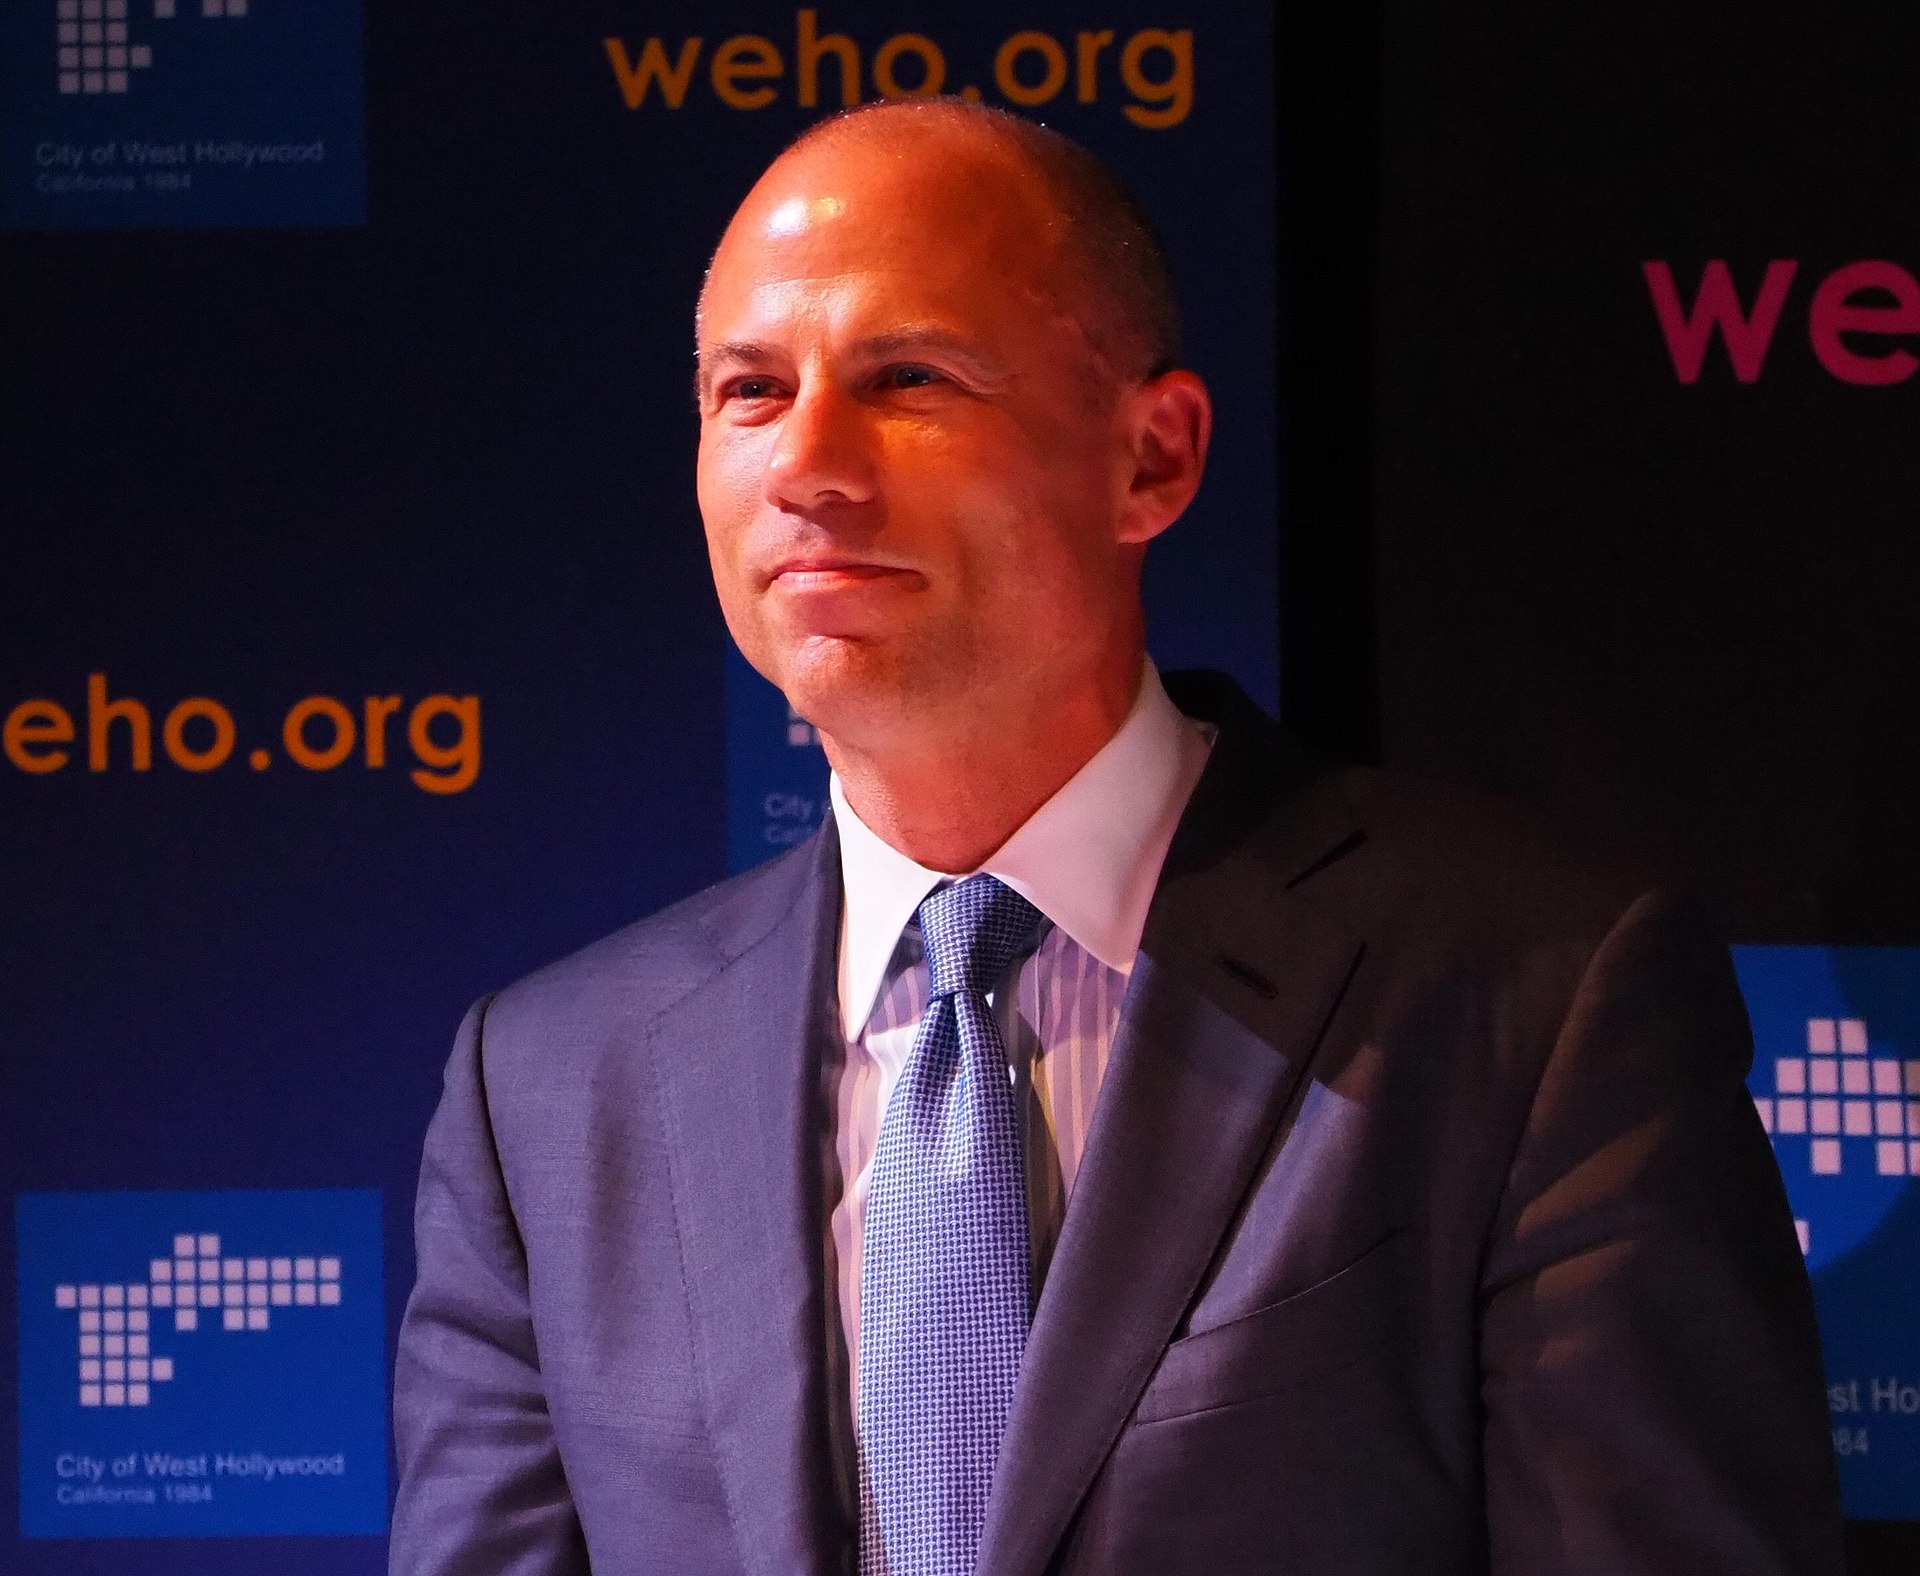 Avenatti Arrested Again While At California State Bar Hearing For Another Legal Matter